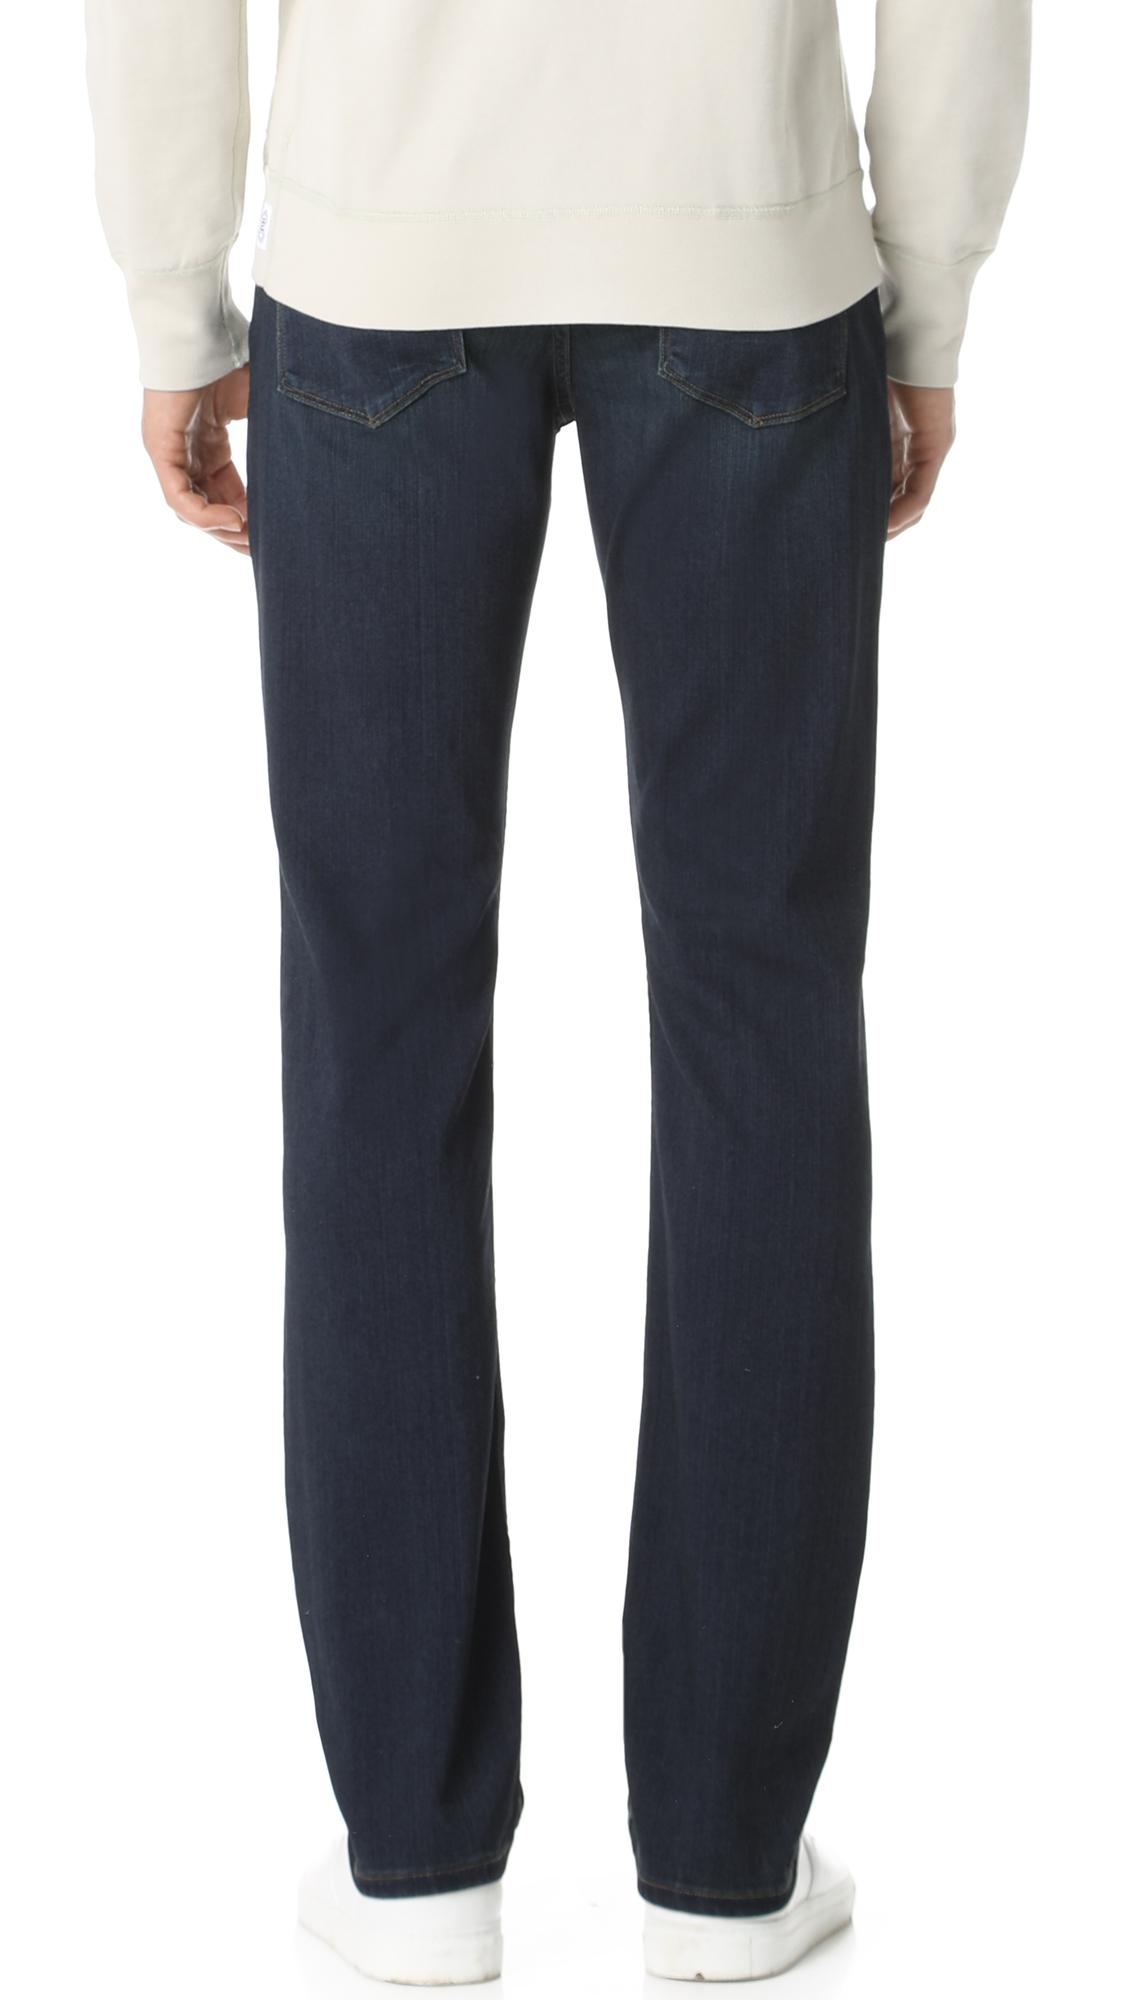 d30ca9fe66a Lyst - PAIGE Normandie Cellar Jeans in Blue for Men